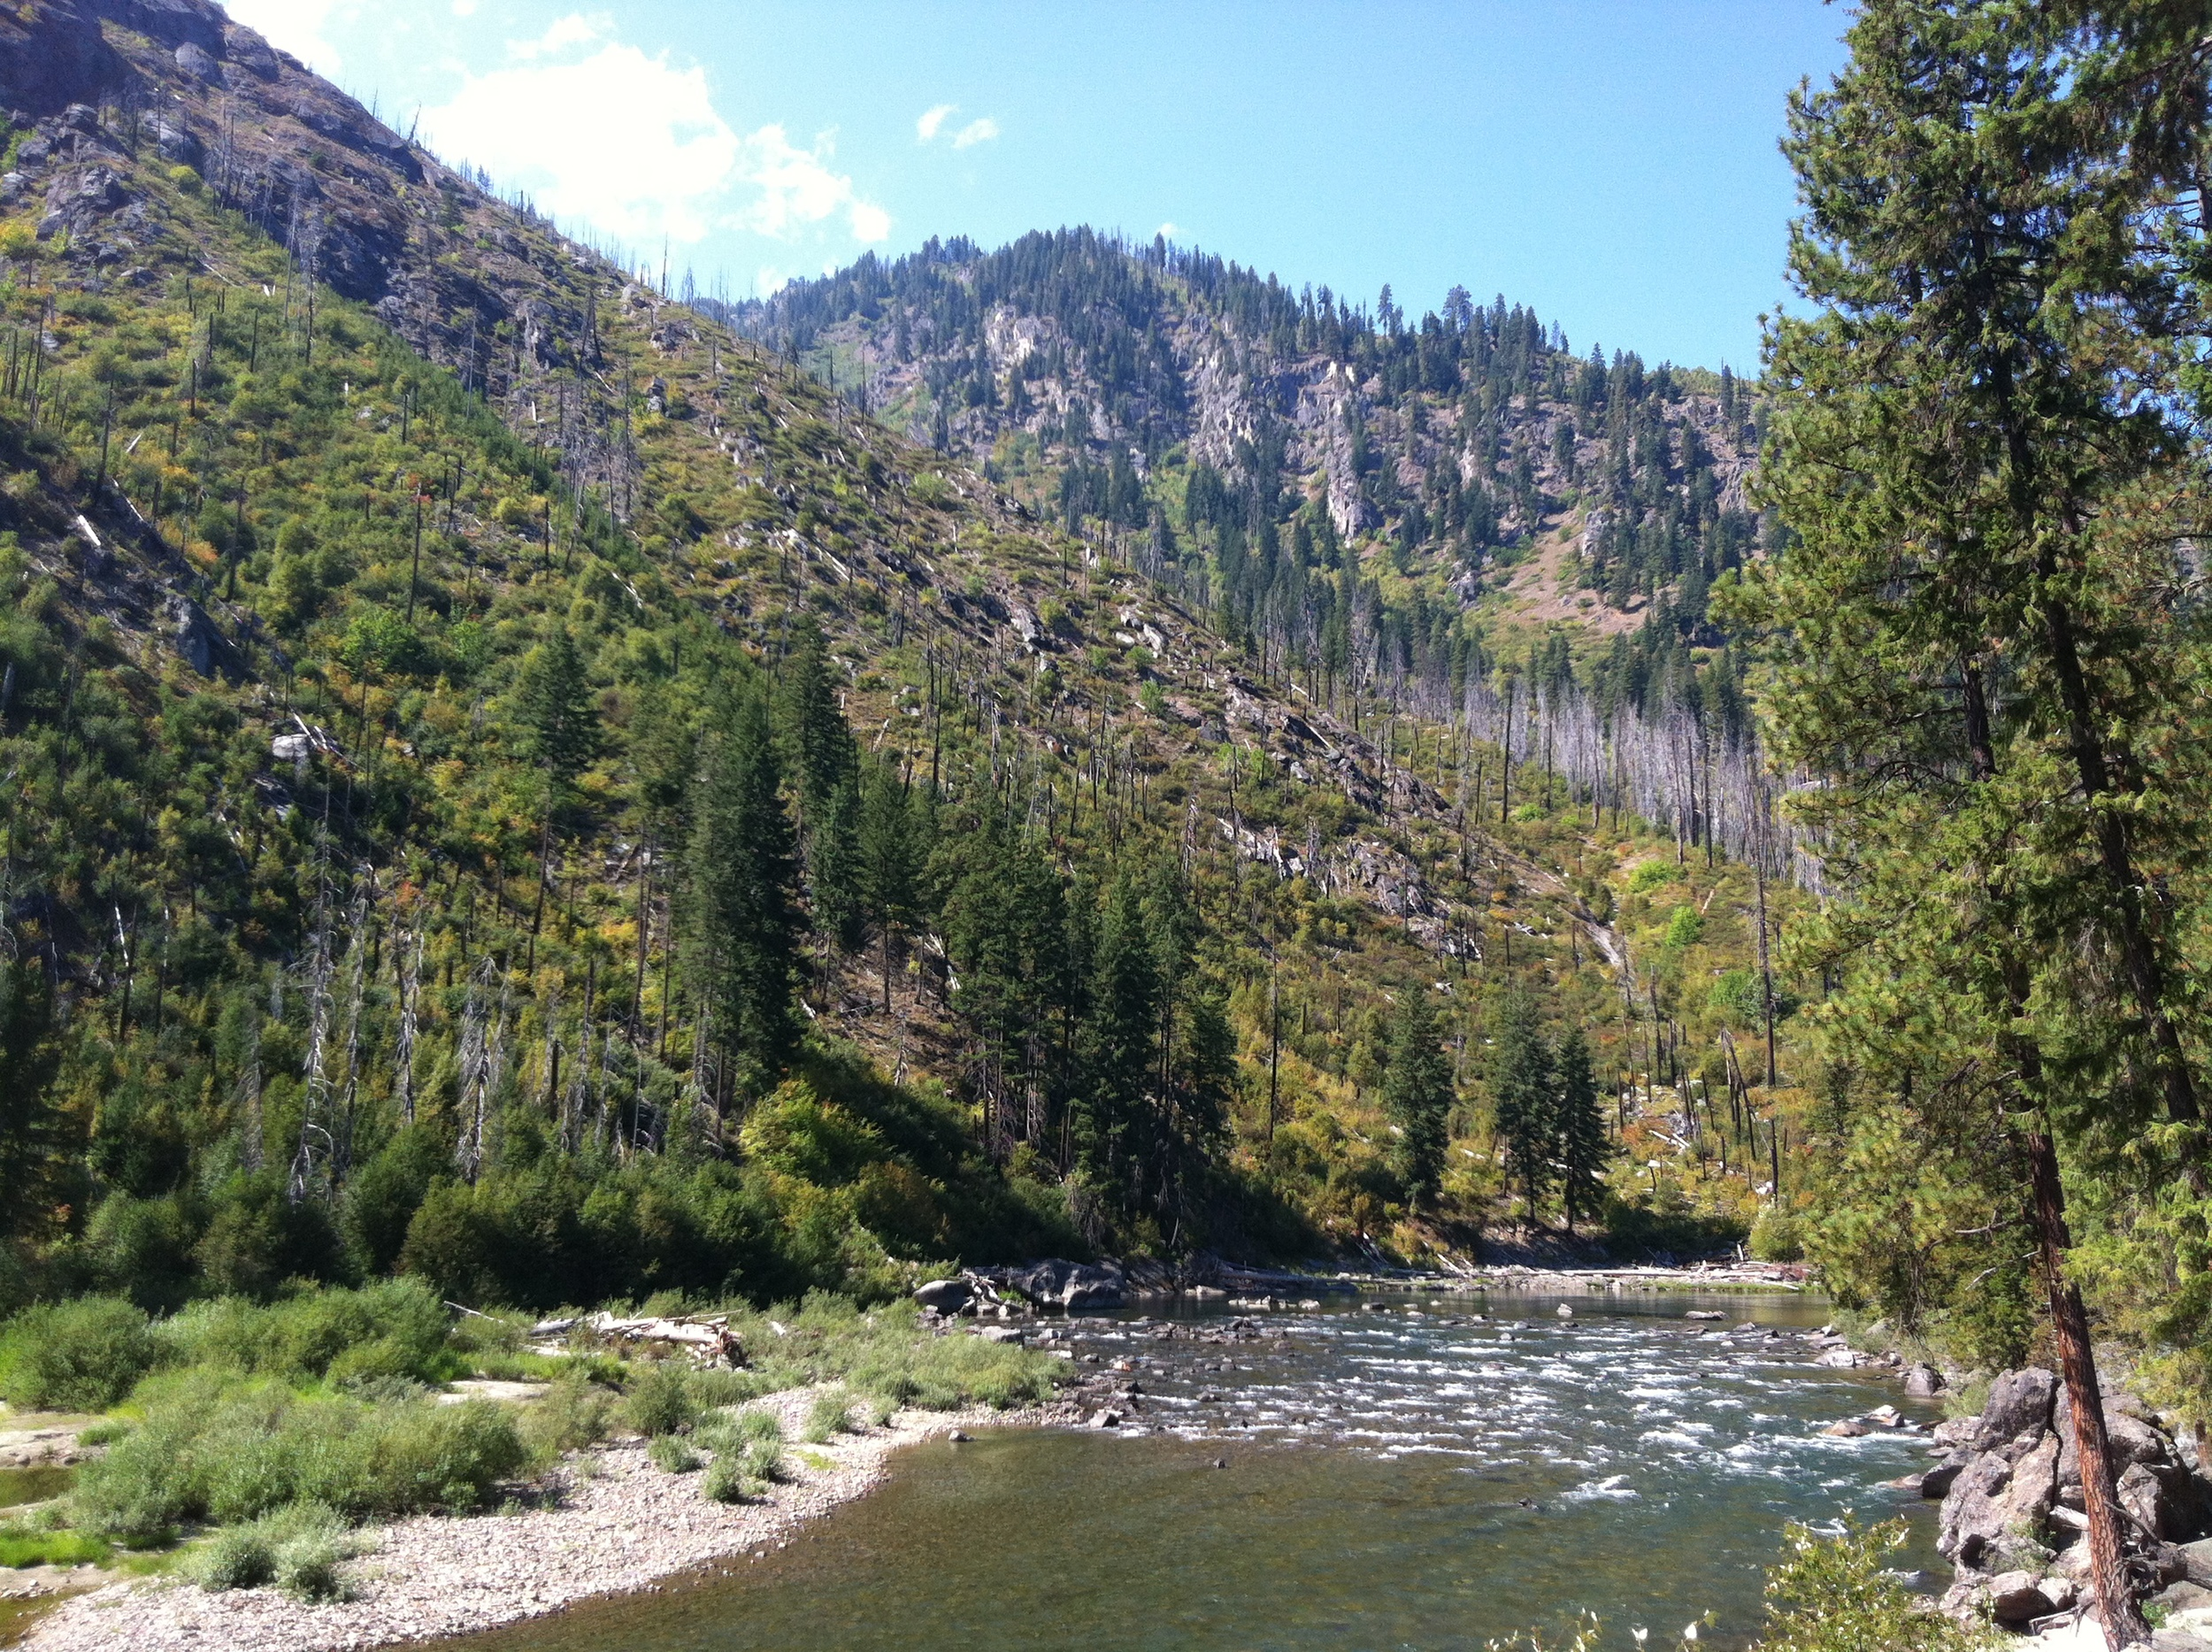 A wayside access point to the alpine Wenatchee River along U.S. Route 2.